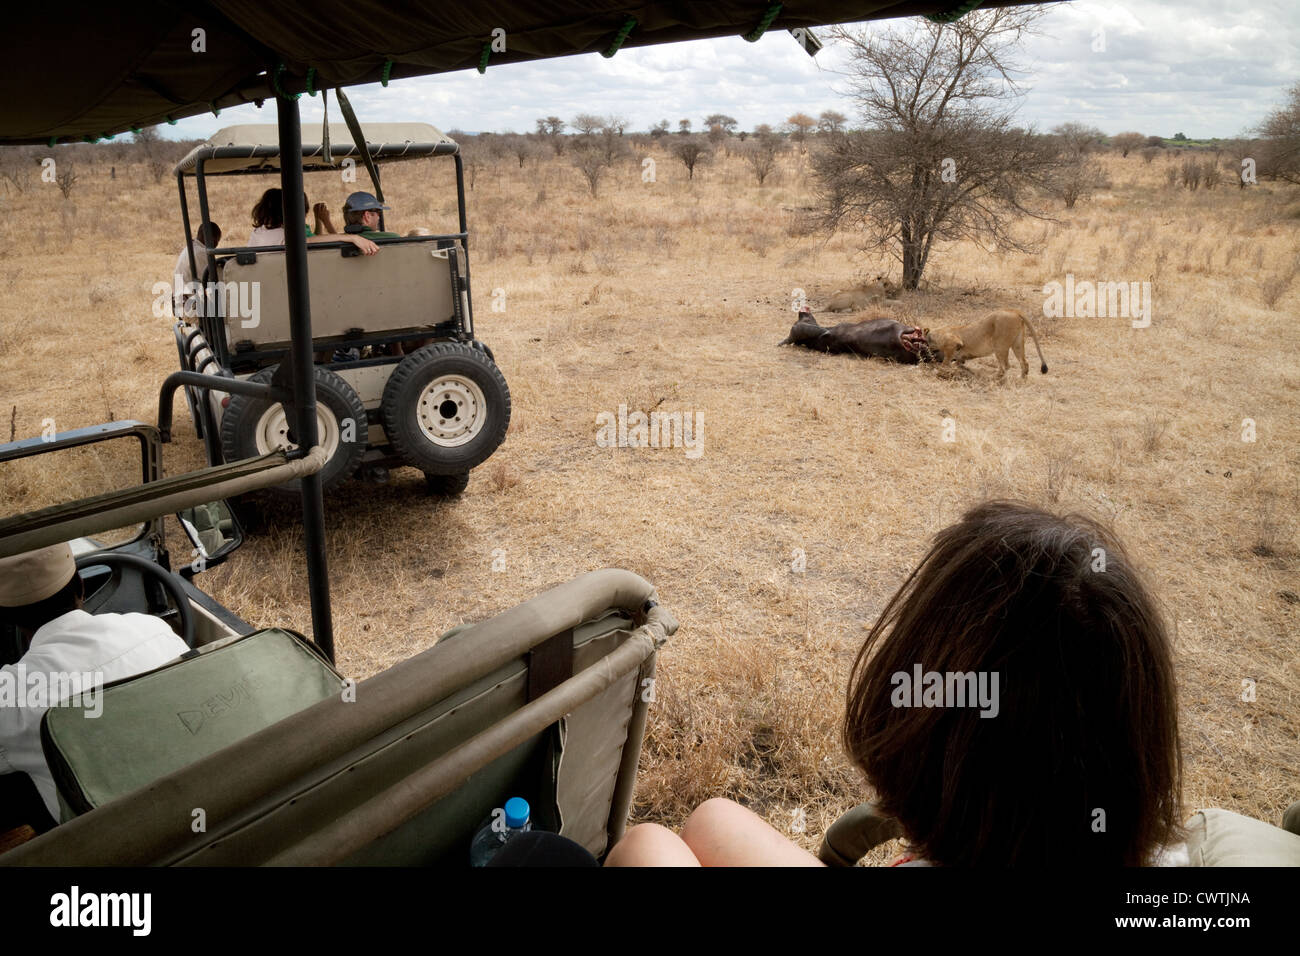 Tourists on a jeep safari watch lions feeding on their kill, Selous game Reserve Tanzania Africa - Stock Image